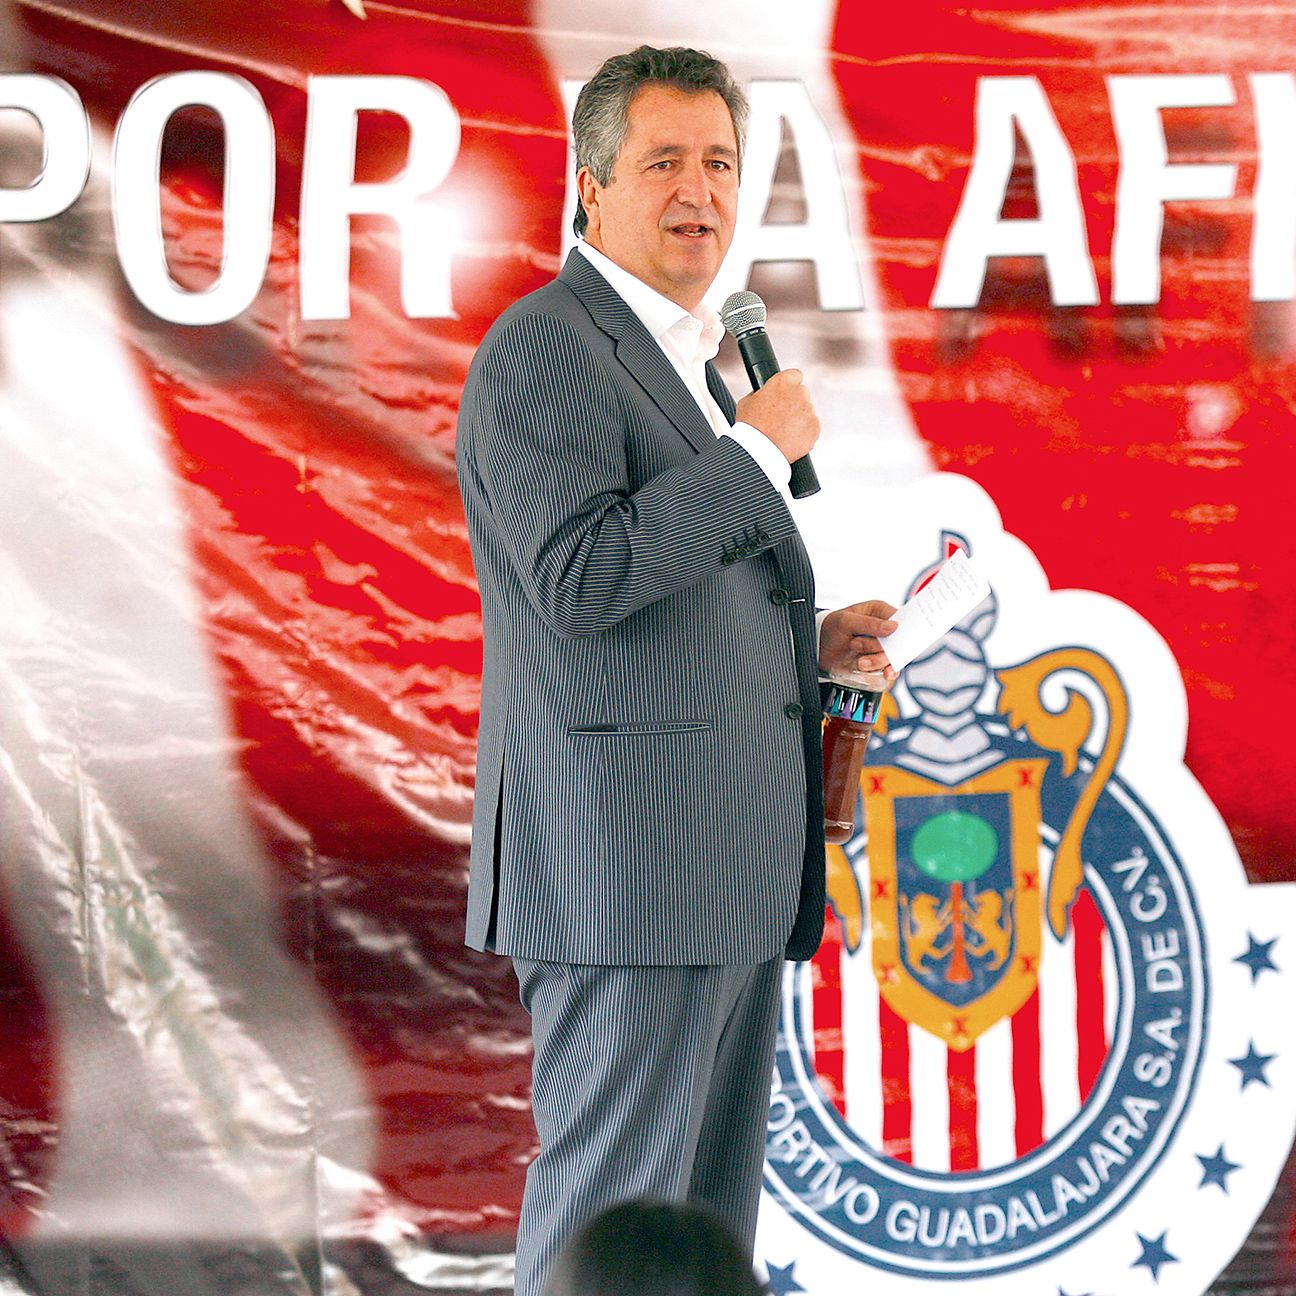 Chivas owner Jorge Vergara was quick to deflect criticism in his Thursday Twitter Q&A with fans.